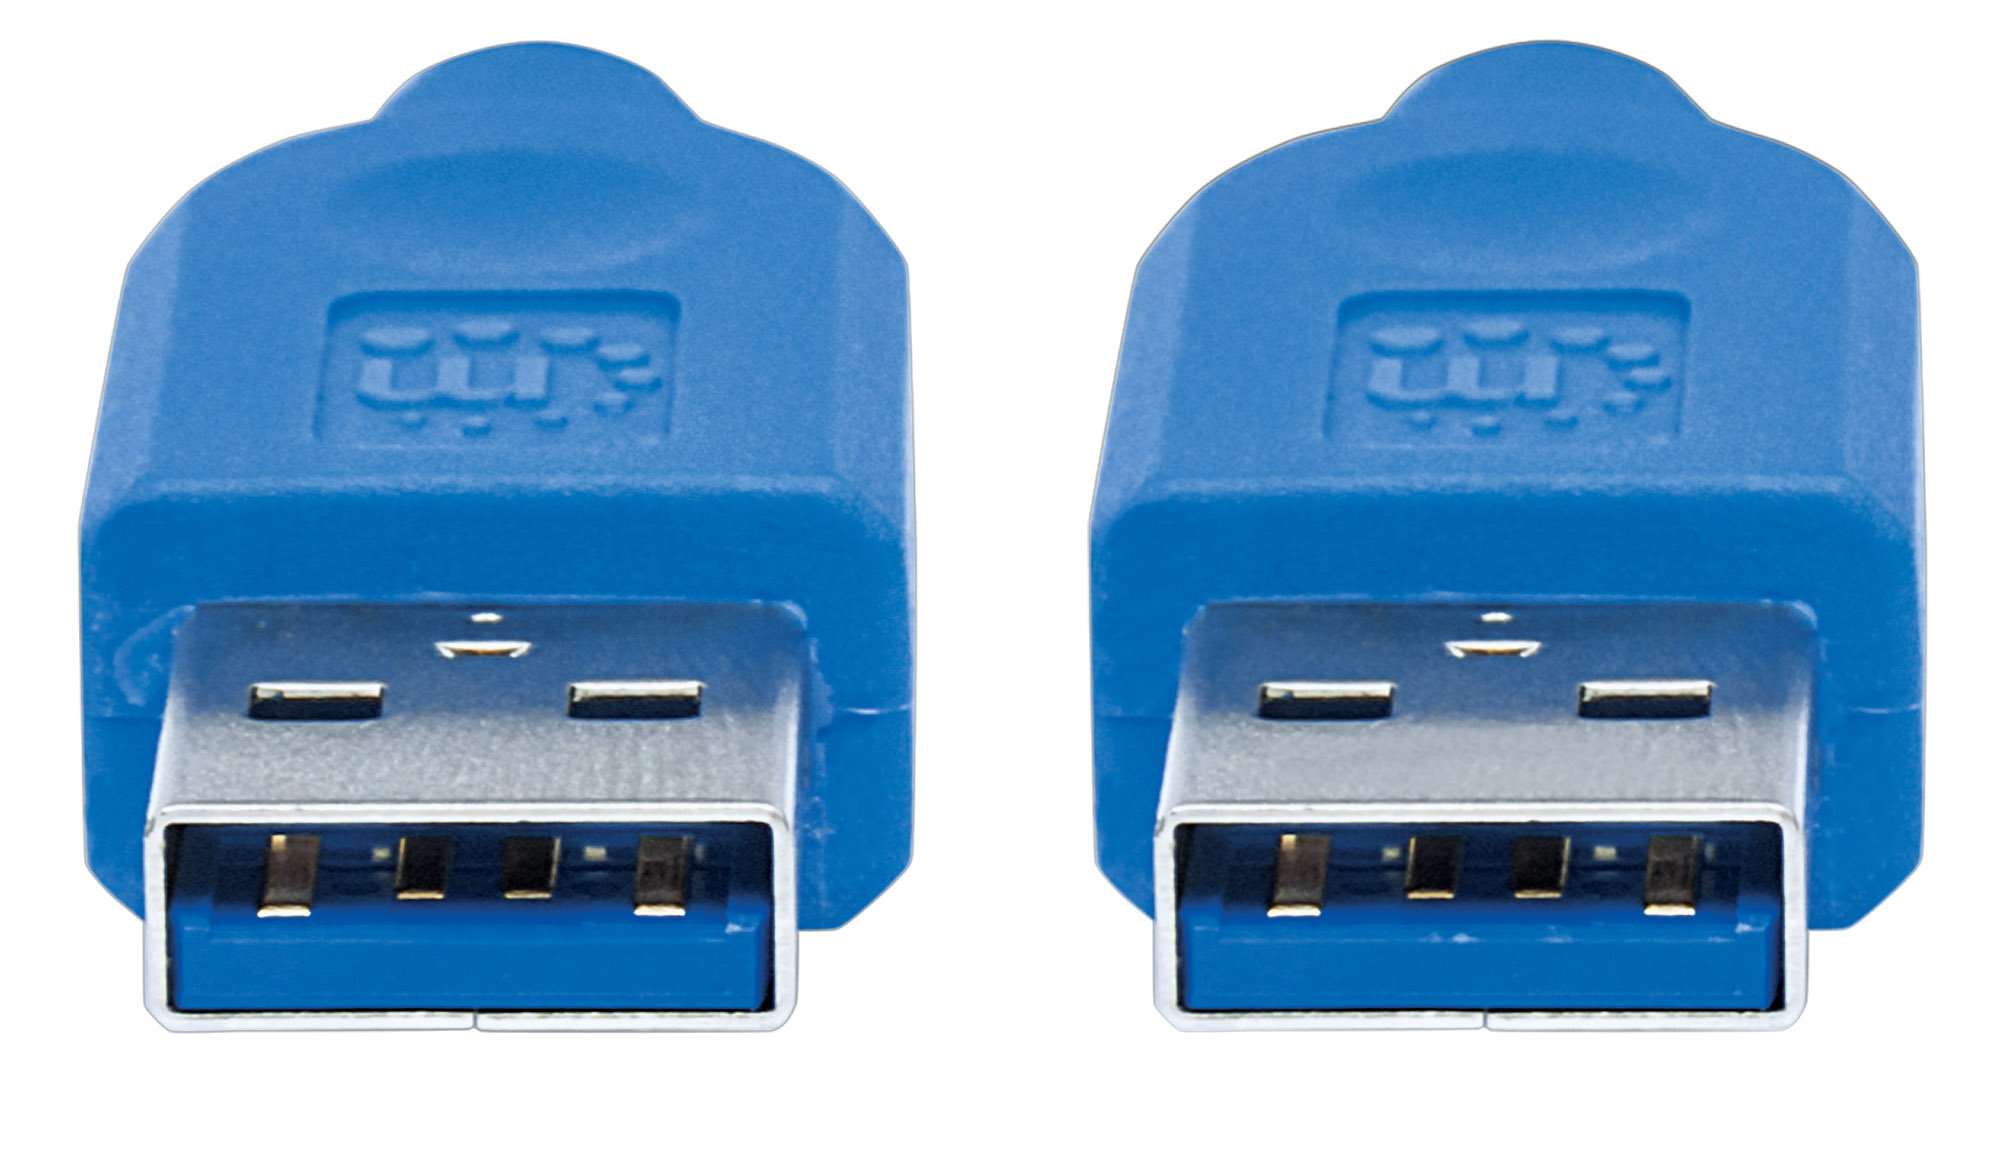 SuperSpeed USB A Device Cable